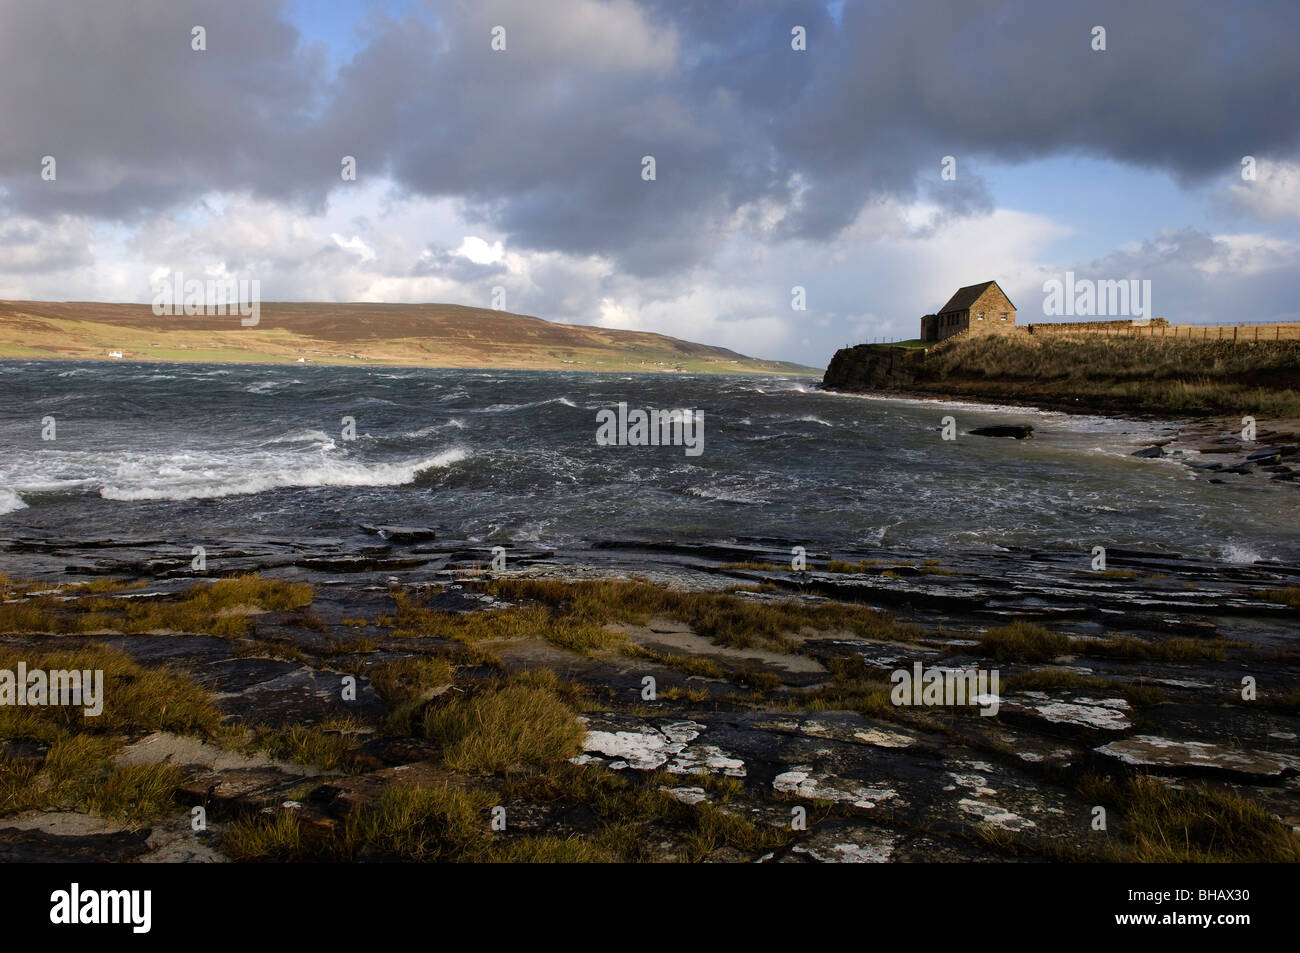 Waves crash over rocks at the Brough of Burness on the mainland, looking towards the Islands of Rousay, Orkney Islands, - Stock Image